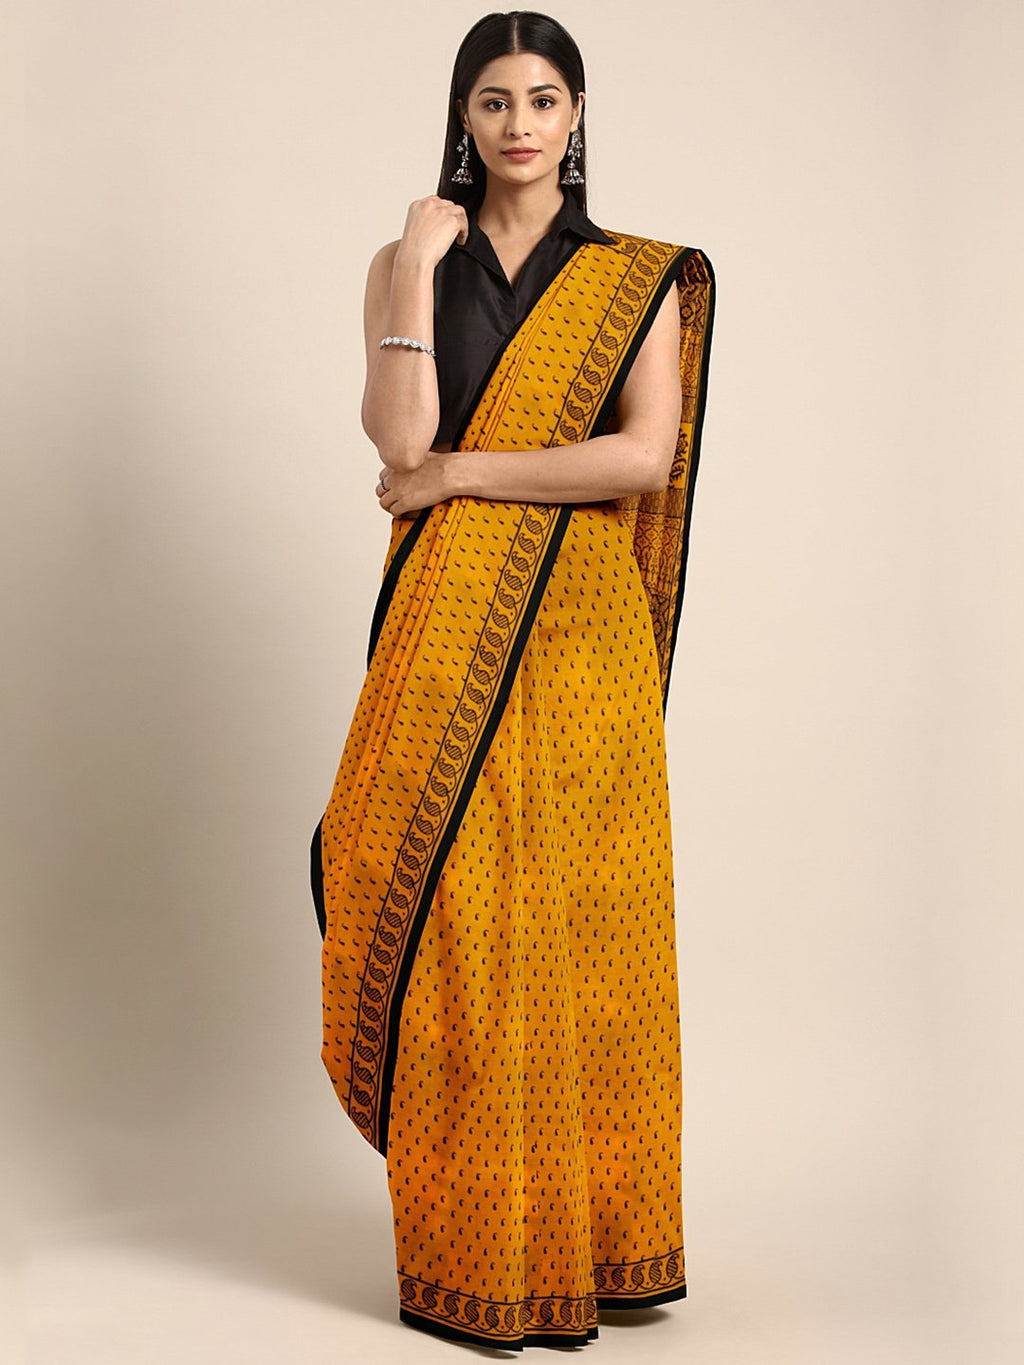 Mustard Yellow Black Bagh Handblock Print Saree-Saree-Kalakari India-MYBASA0017-Bagh, Cotton, Geographical Indication, Hand Blocks, Hand Crafted, Heritage Prints, Natural Dyes, Sarees, Sustainable Fabrics-[Linen,Ethnic,wear,Fashionista,Handloom,Handicraft,Indigo,blockprint,block,print,Cotton,Chanderi,Blue, latest,classy,party,bollywood,trendy,summer,style,traditional,formal,elegant,unique,style,hand,block,print, dabu,booti,gift,present,glamorous,affordable,collectible,Sari,Saree,printed, holi, D